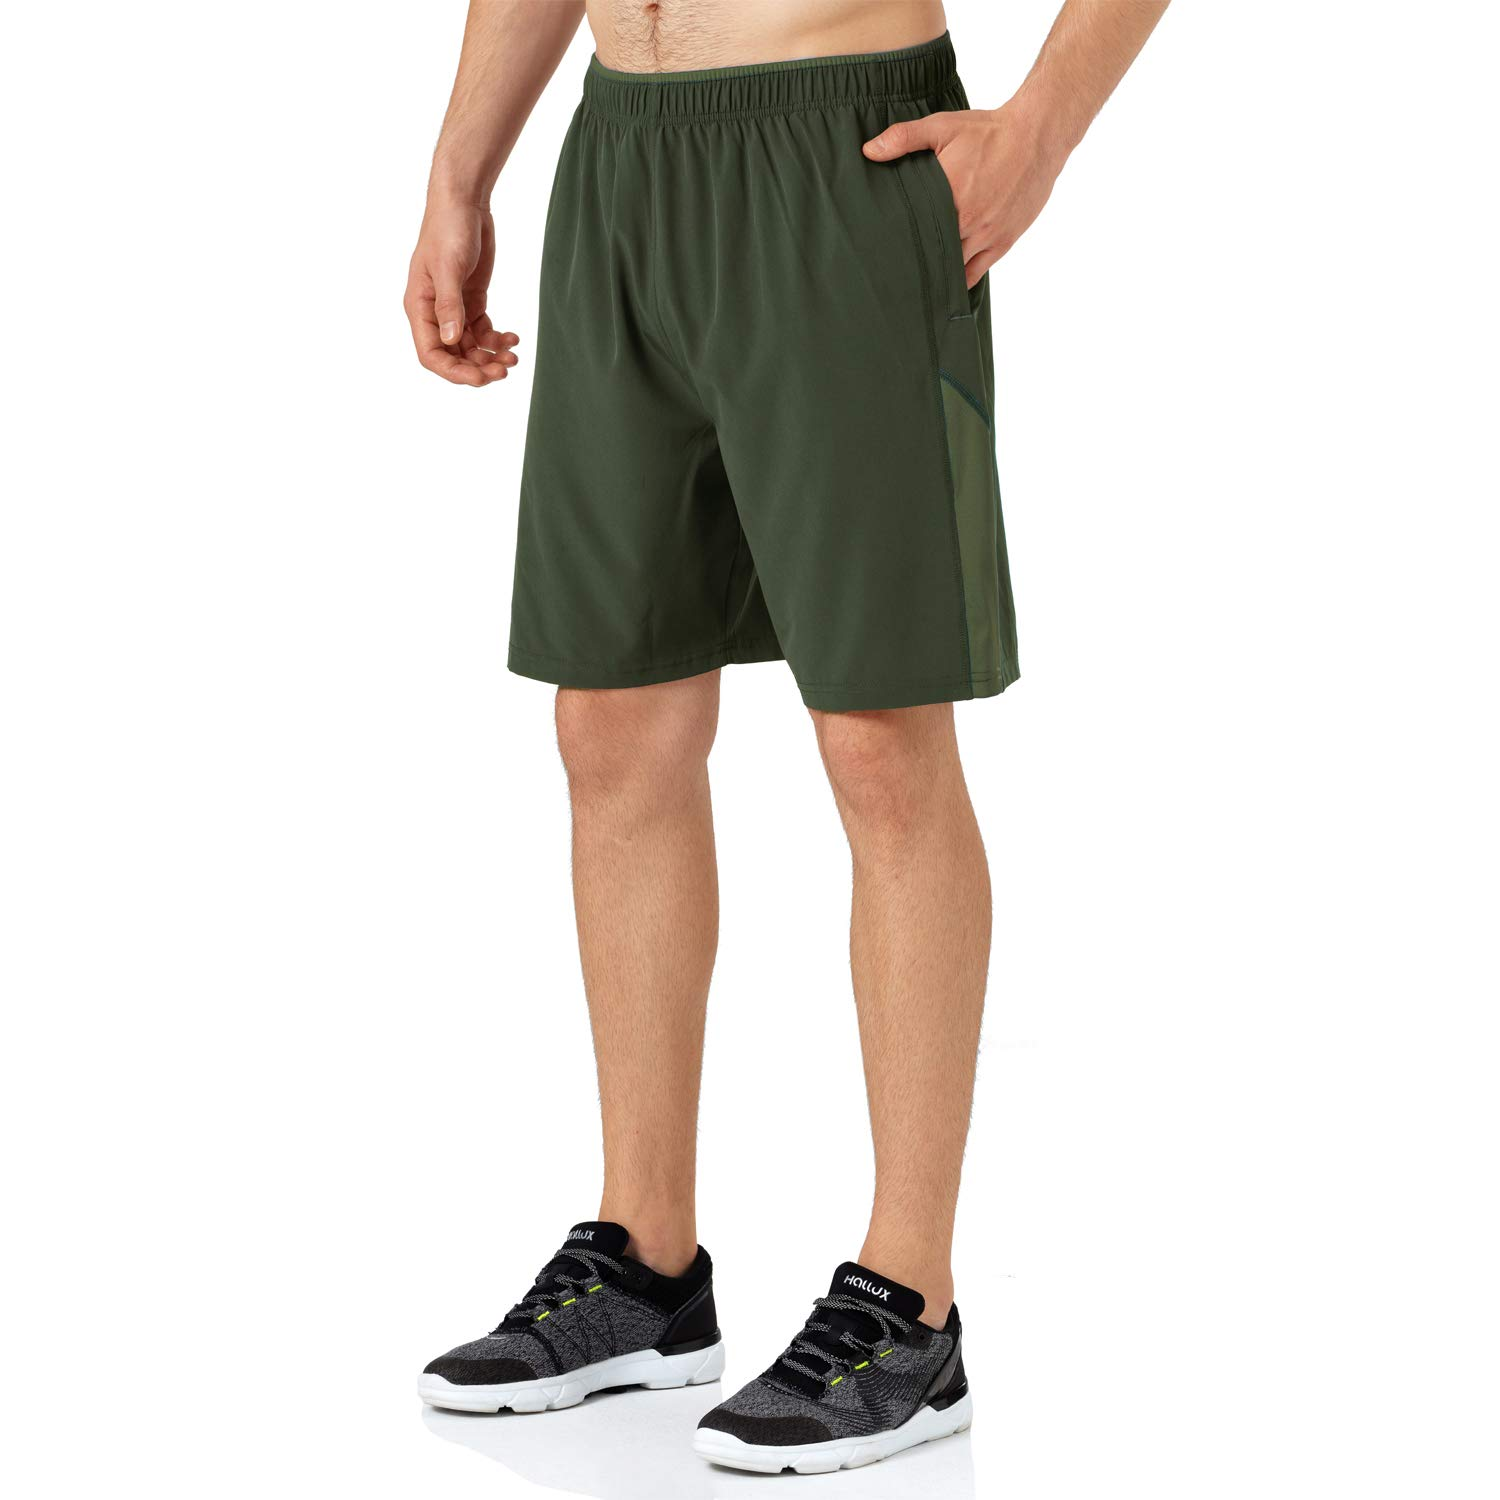 Uni Clau Athletic Mens Running Shorts Quick Dry Sports Workout Gym Jogger Shorts with Zip Pocket